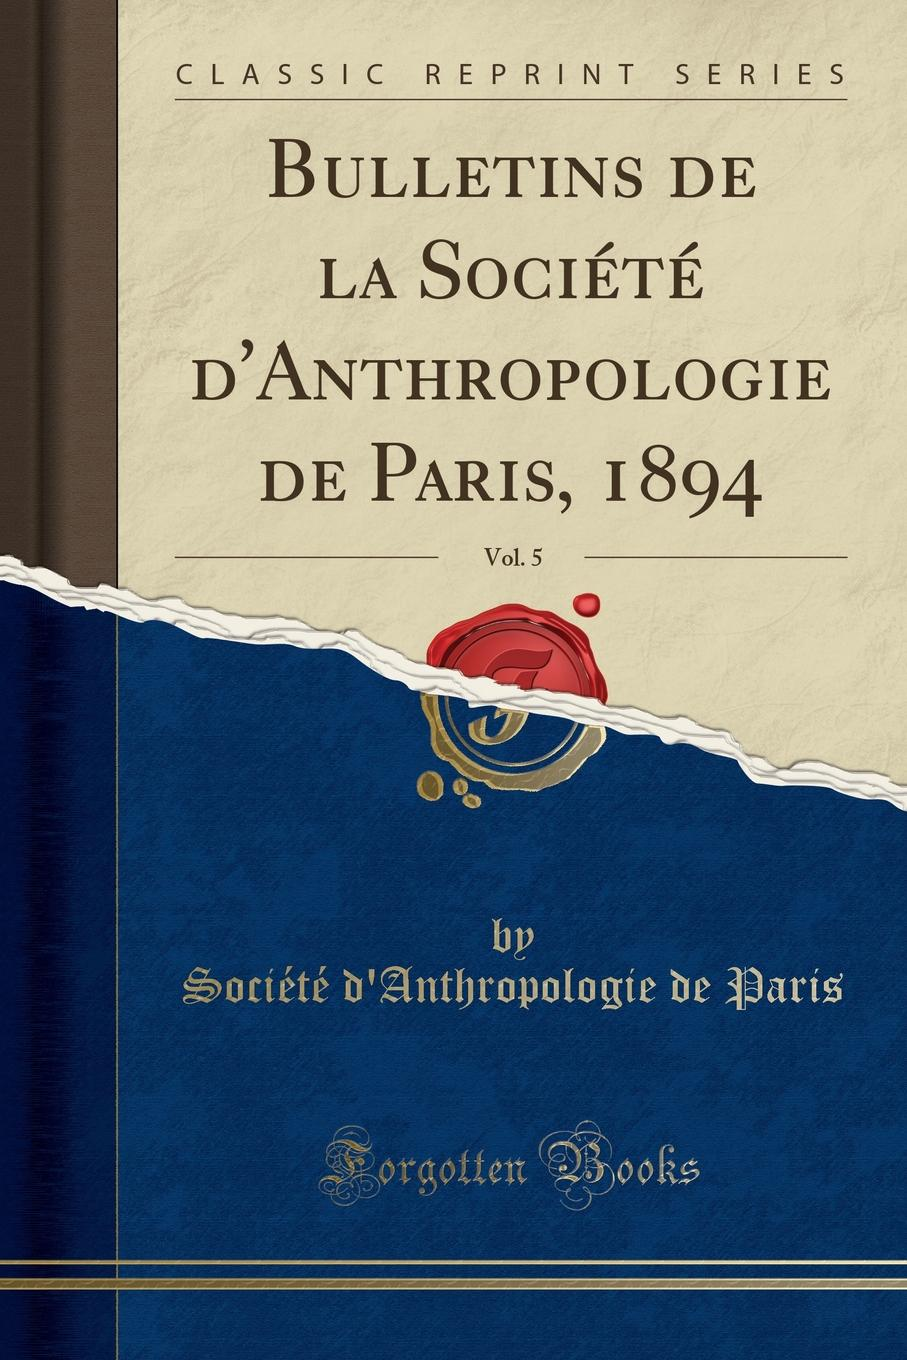 Société d'Anthropologie de Paris Bulletins de la Societe d.Anthropologie de Paris, 1894, Vol. 5 (Classic Reprint)